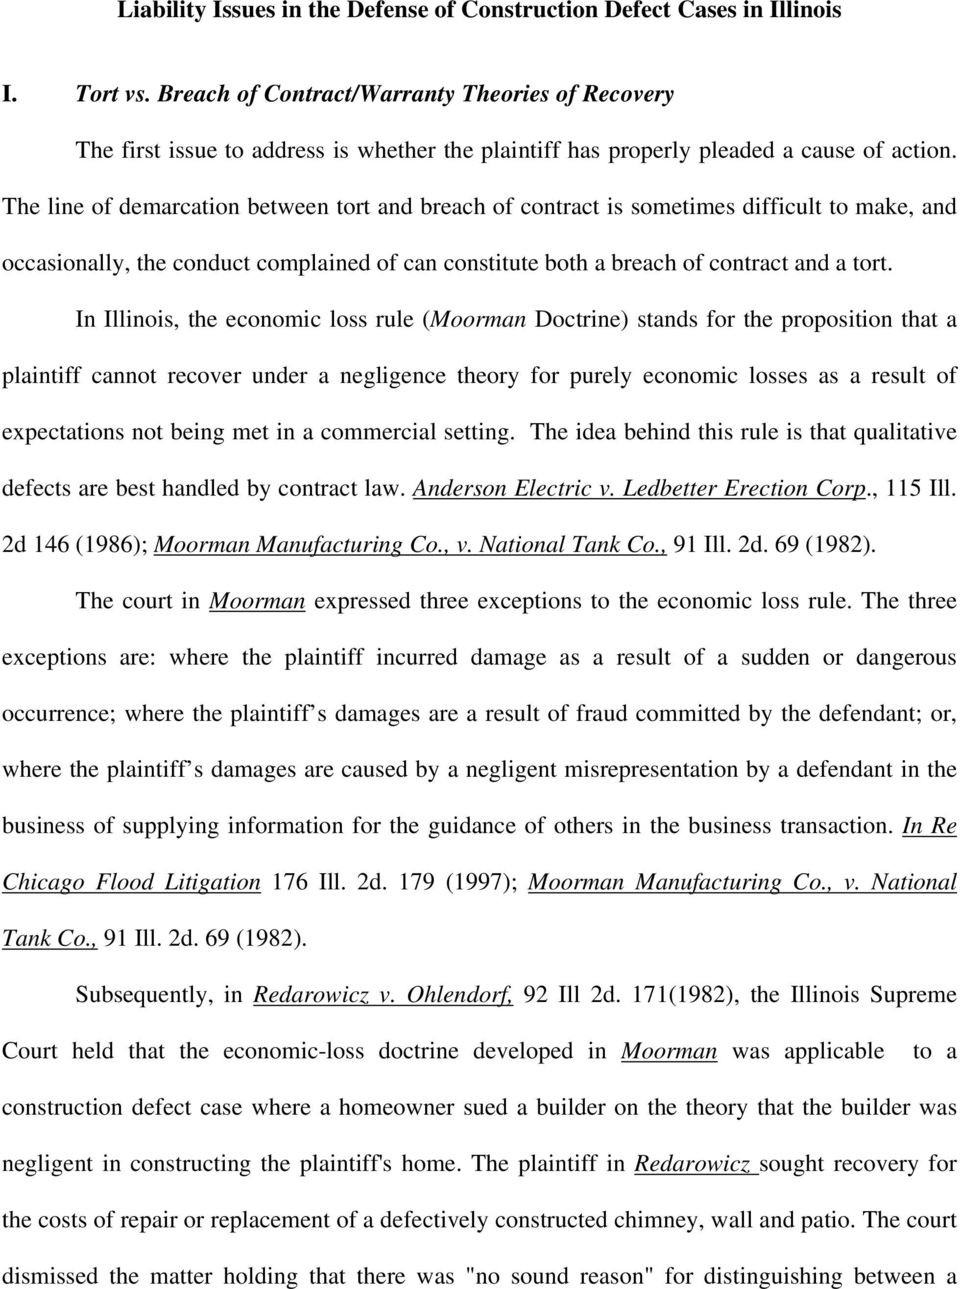 The line of demarcation between tort and breach of contract is sometimes difficult to make, and occasionally, the conduct complained of can constitute both a breach of contract and a tort.